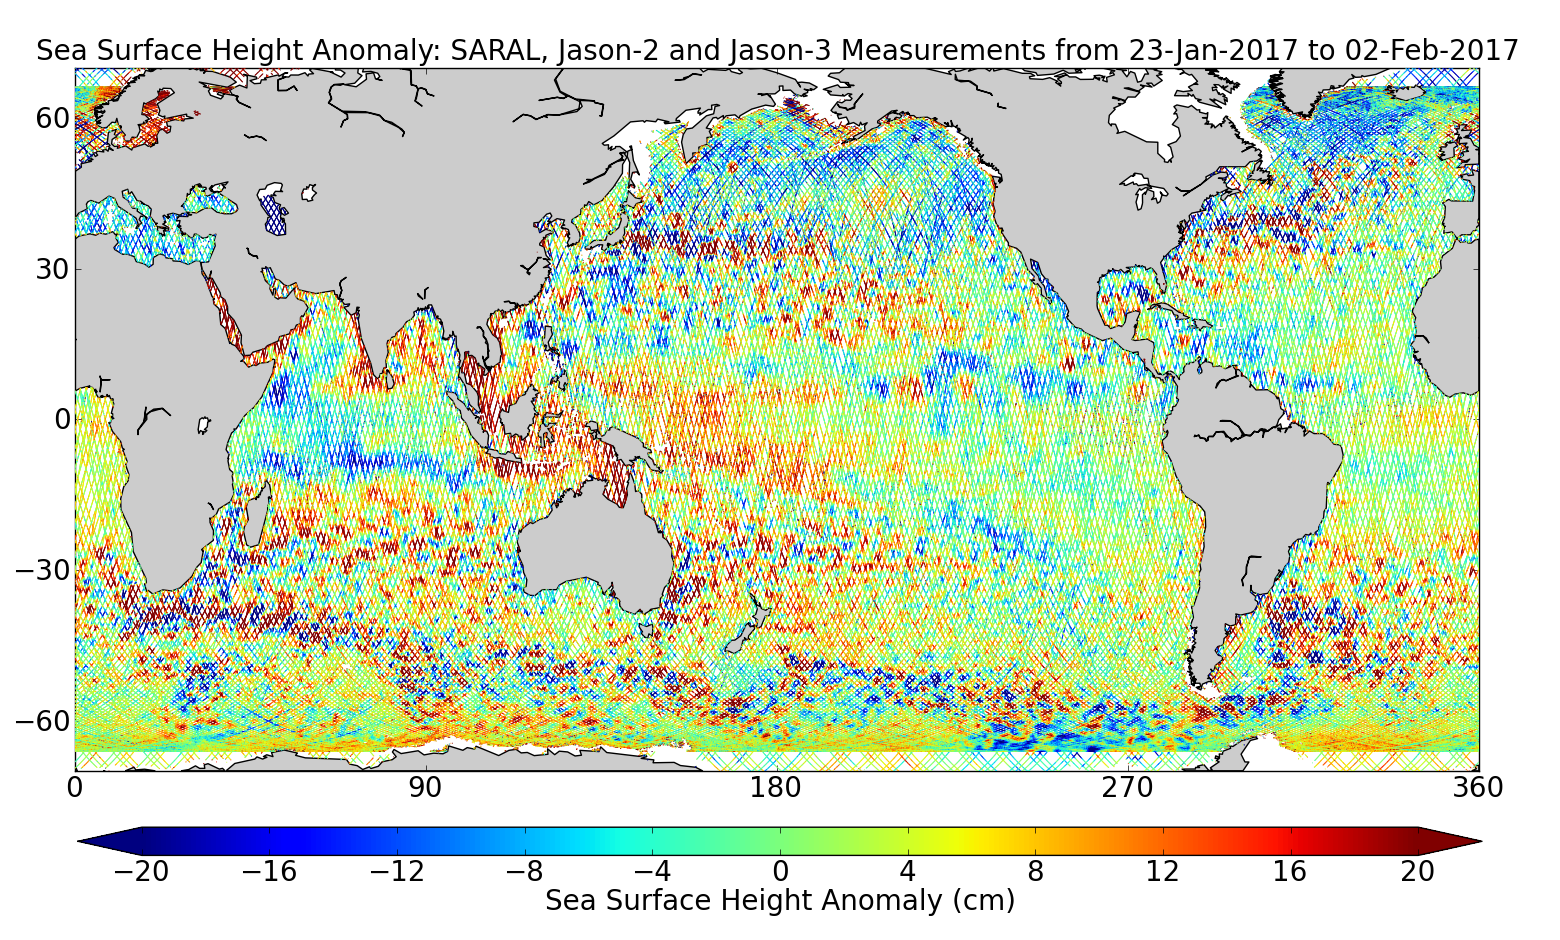 Sea Surface Height Anomaly: SARAL, Jason-2 and Jason-3 Measurements from 23-Jan-2017 to 02-Feb-2017